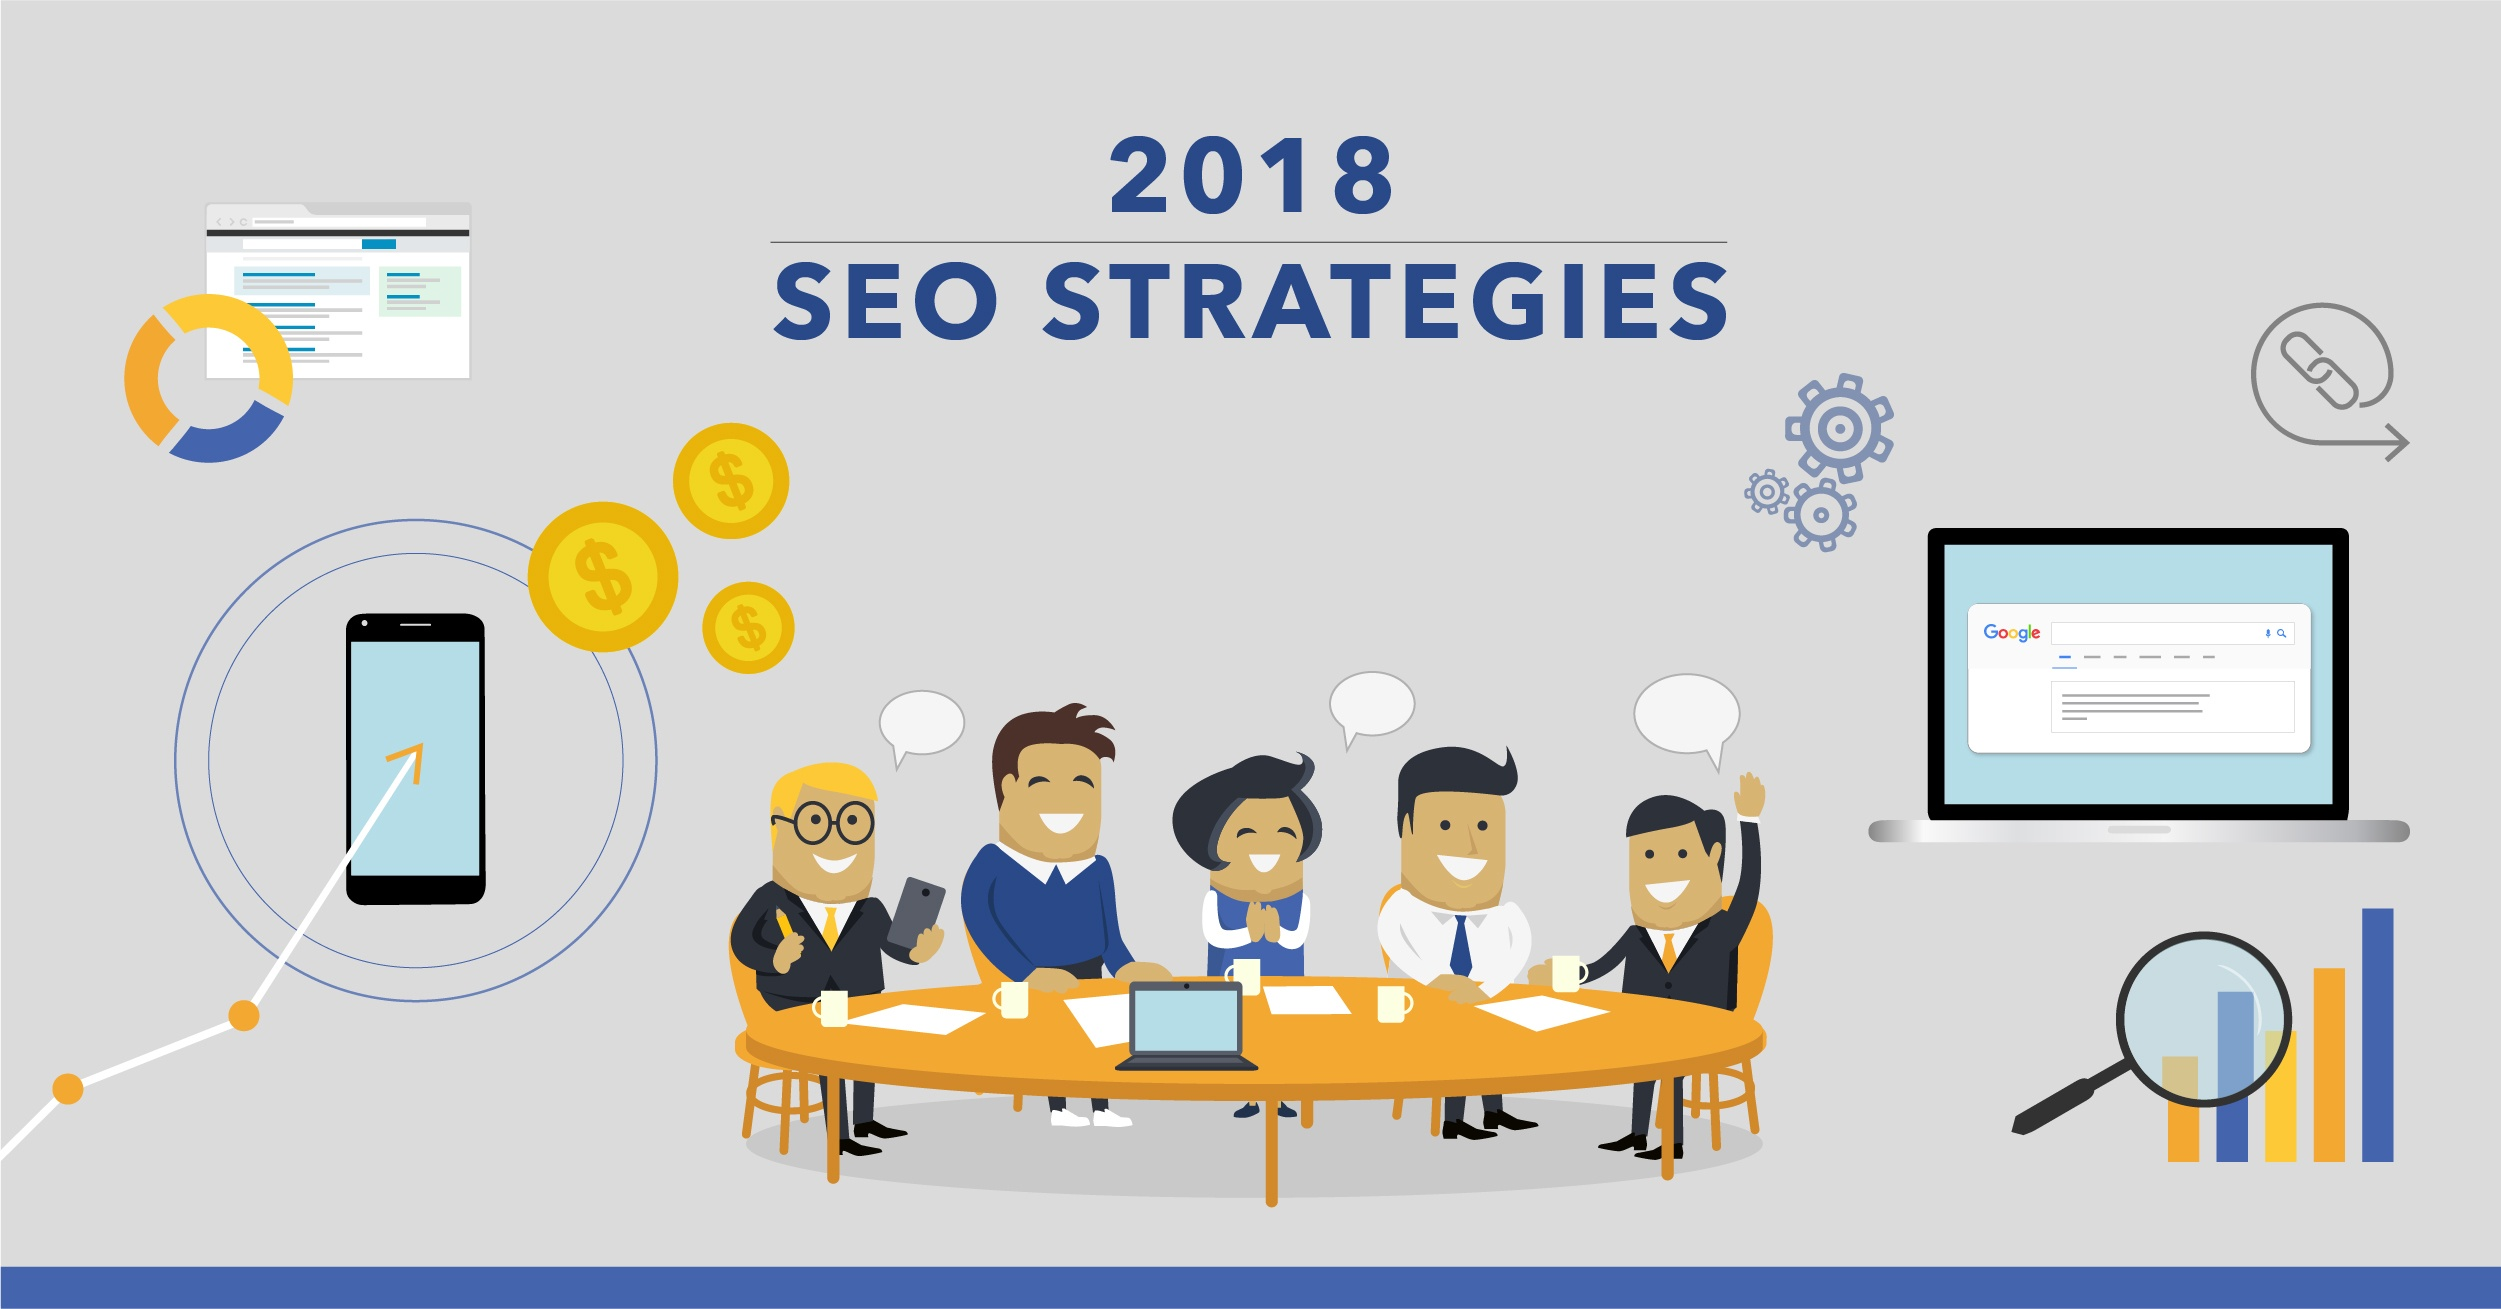 6 SEO Strategies to Focus on in 2018 - Featured Image